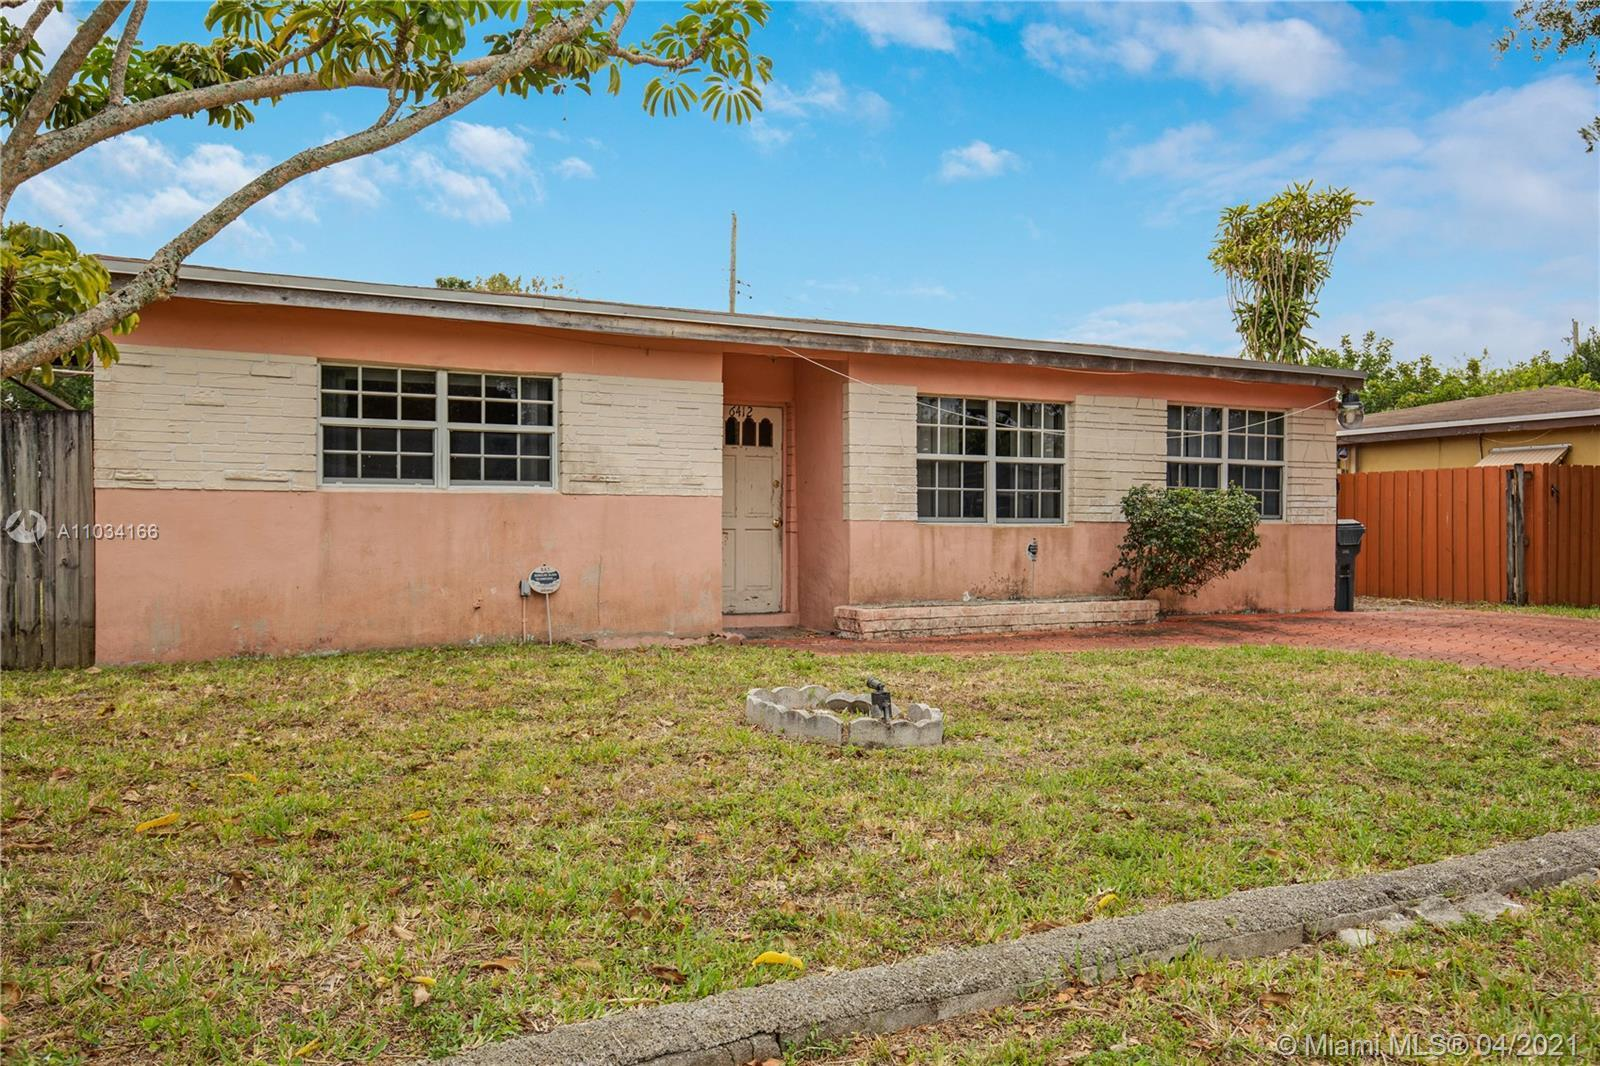 3 Bdr/ 2 bath home in Hollywood with a pool.  Home has a lot of potential. Cash only due to conditio